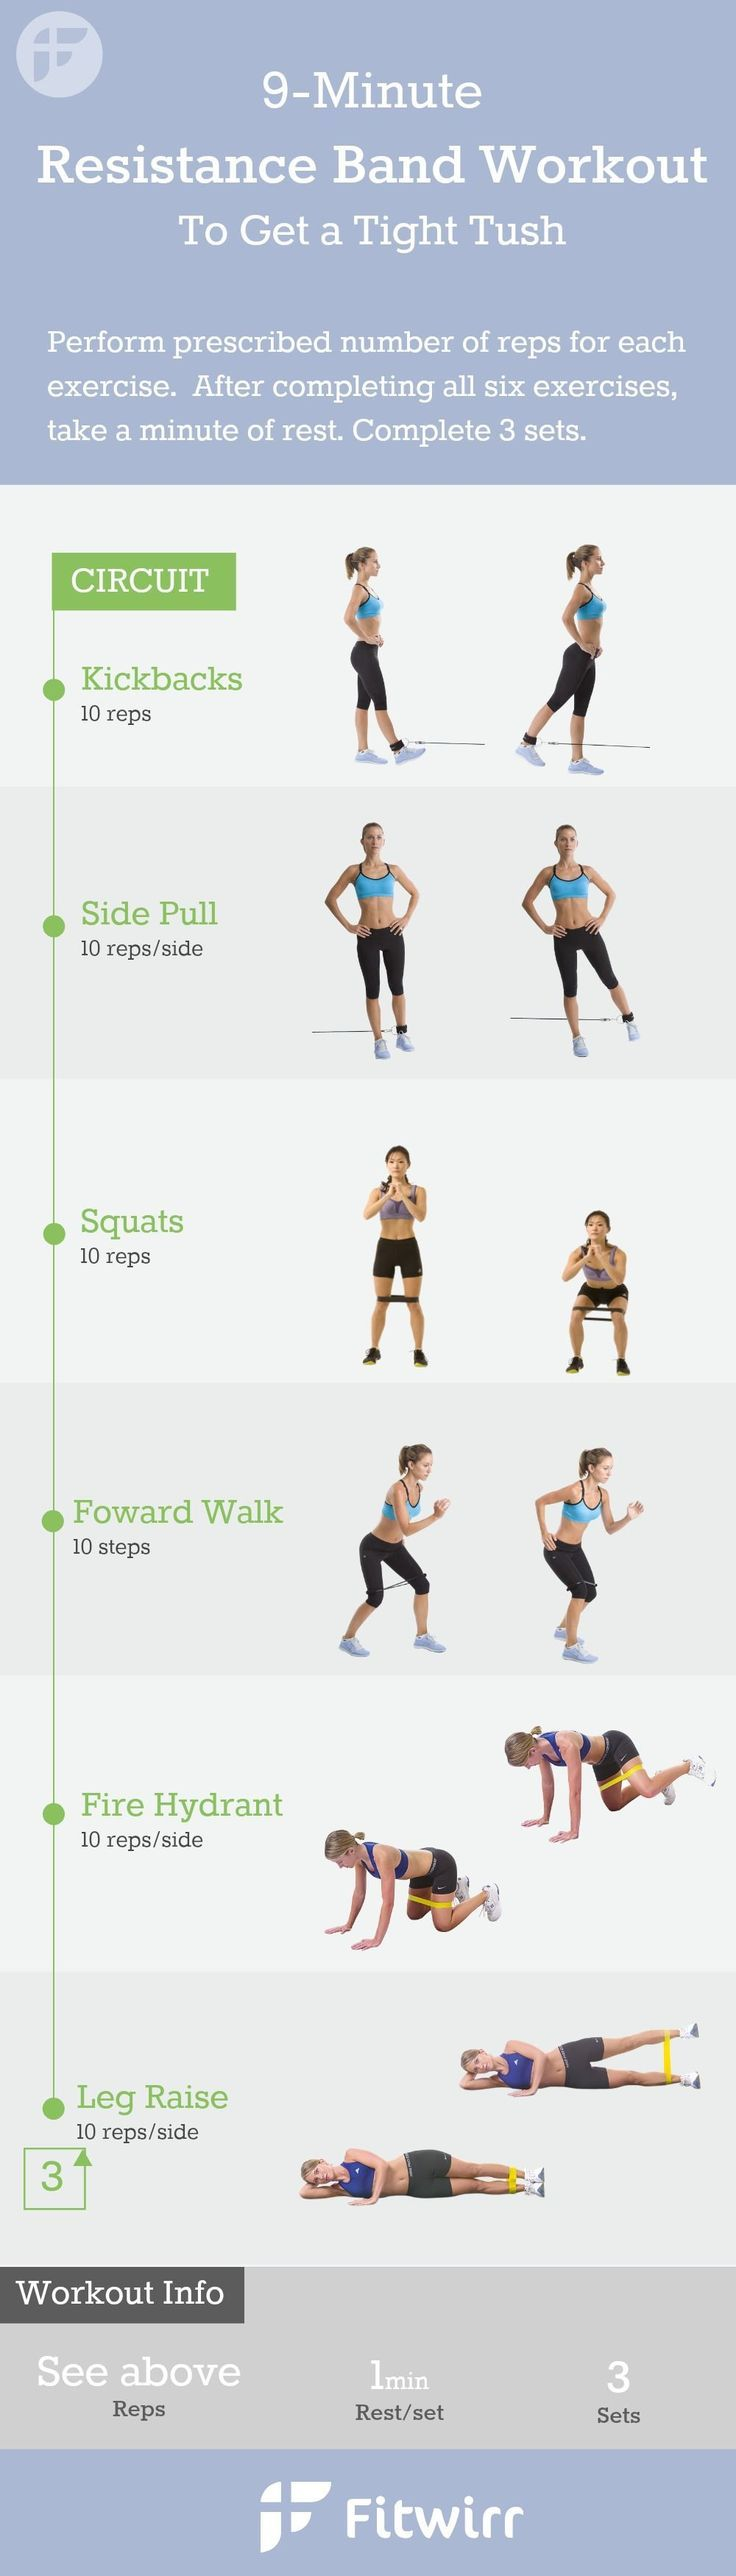 124 Best Lower Body Images On Pinterest Bodies Band Timesaving Fullbody Circuit Fitnessrx For Women 9 Minute Resistance Exercises You Dont Have To Lift